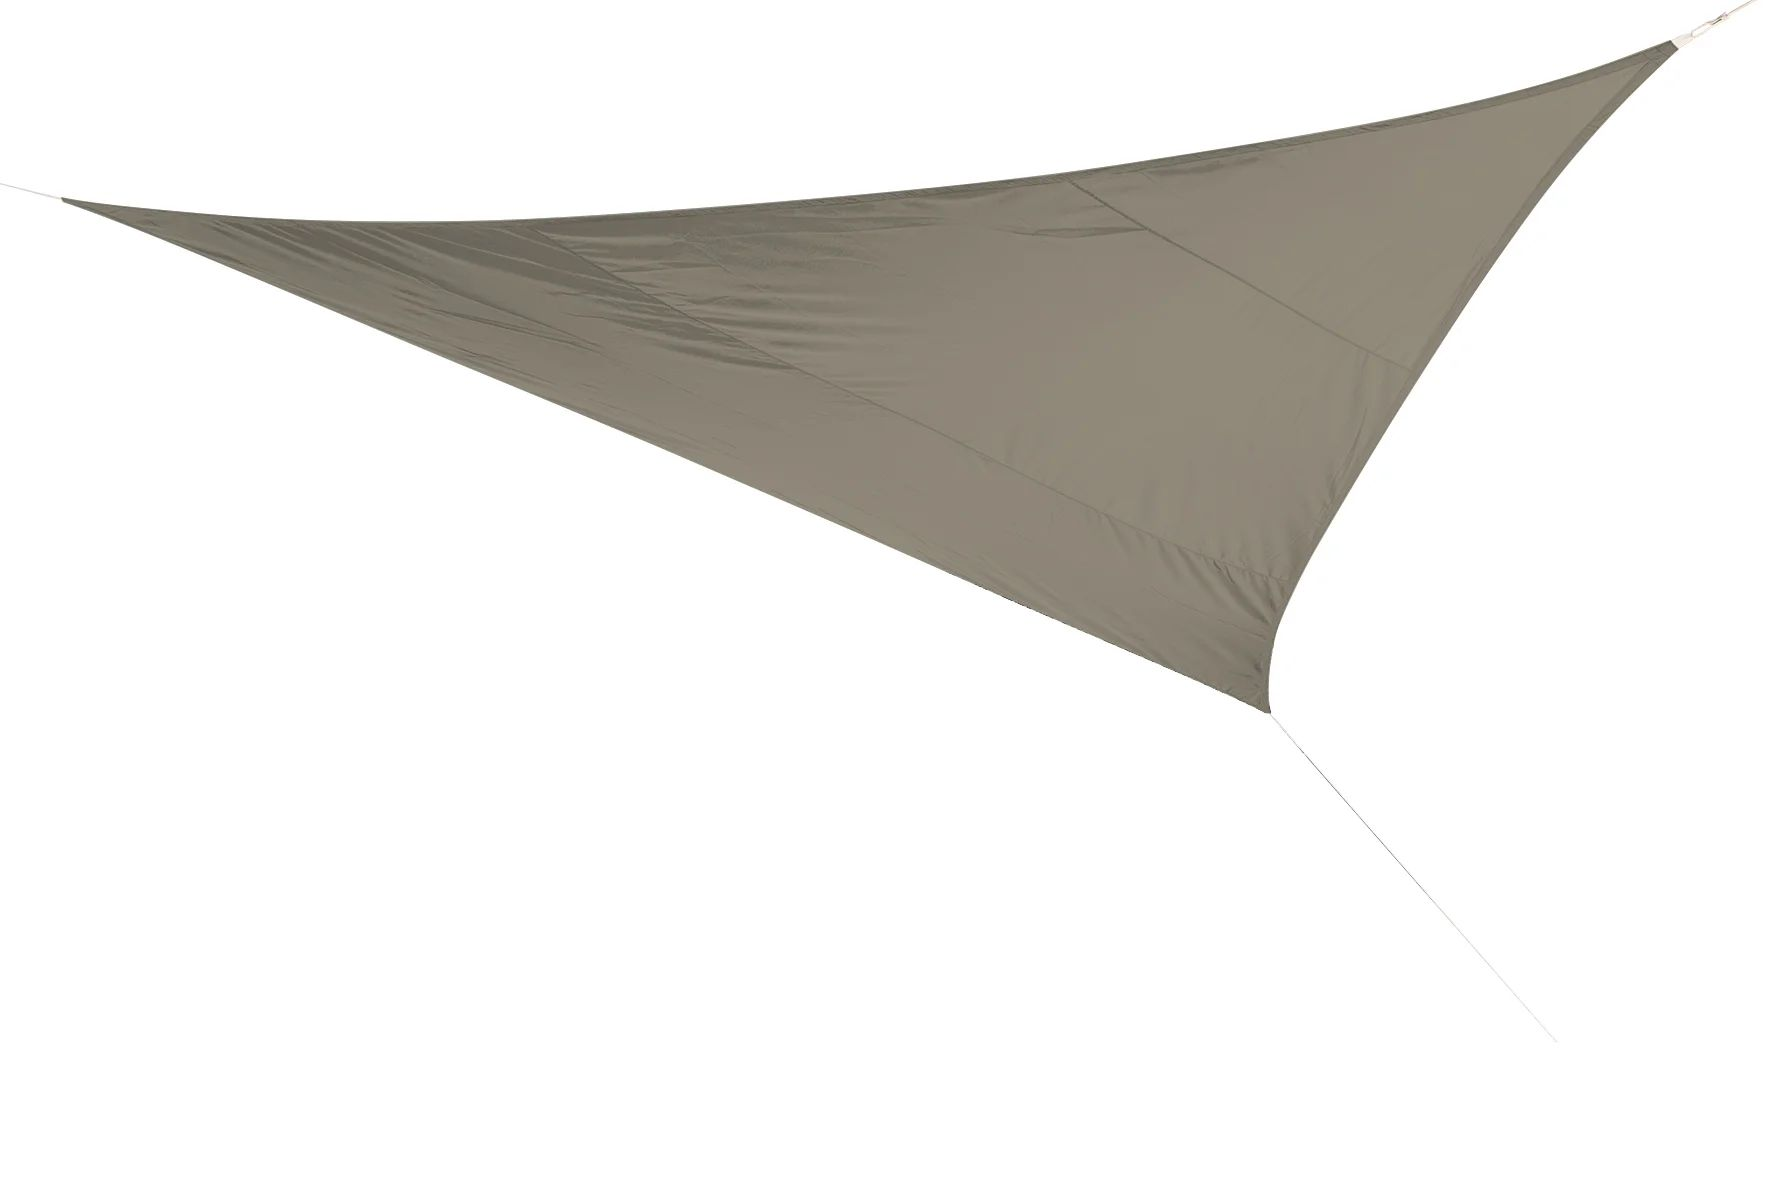 voile d ombrage triangulaire taupe l 500 x l 500 cm